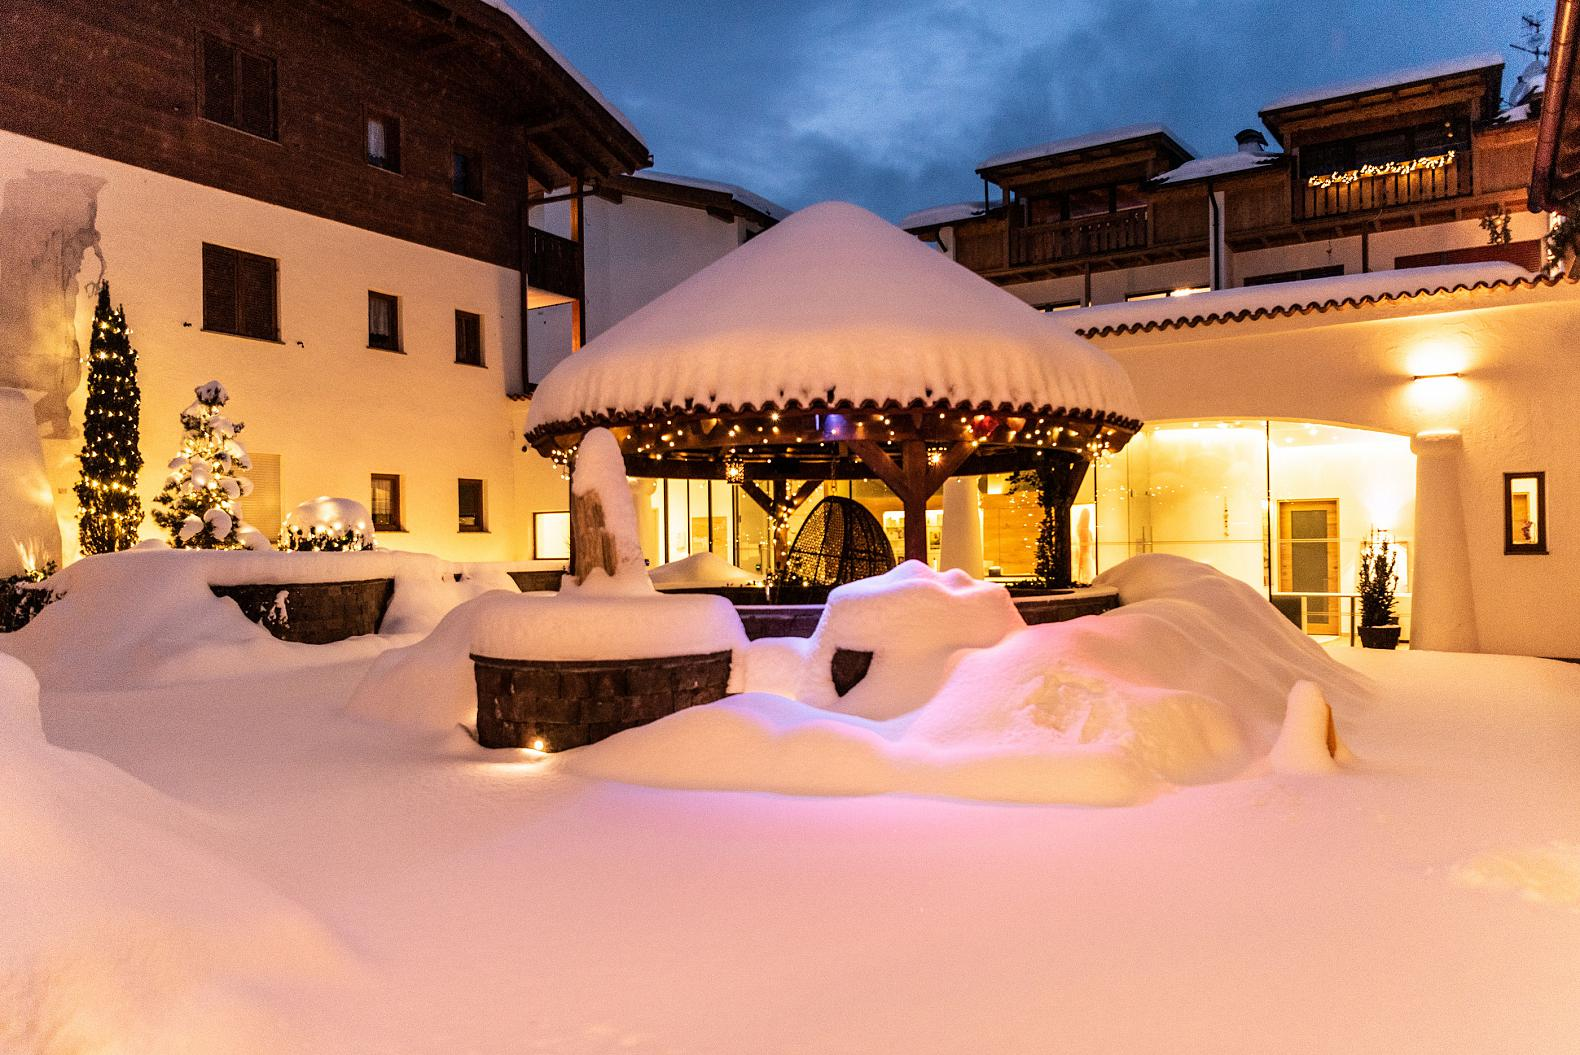 Winter photo of the Hotel Kastel Seiser Alm